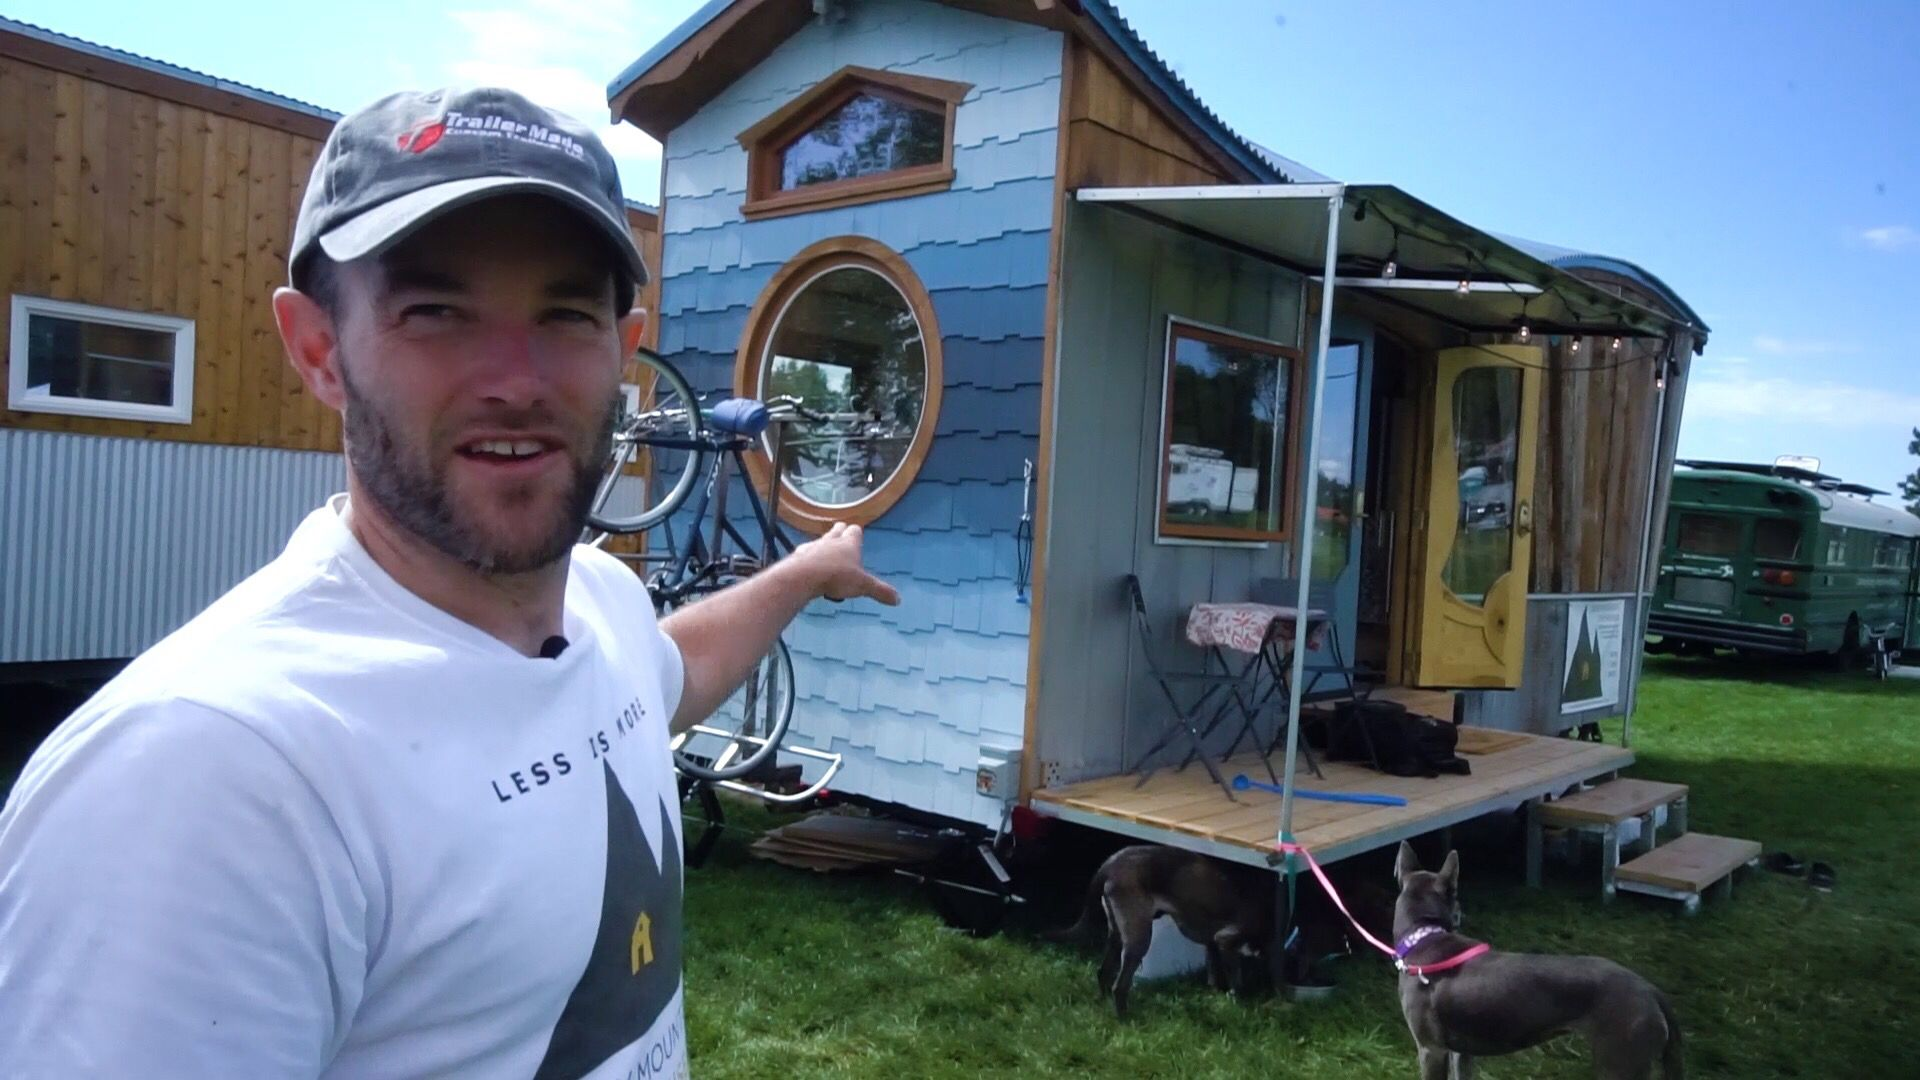 Greg And His Wife Stephanie Live In This Incredible Tiny Home Greg Owns Rocky Mountain Tiny Houses And When His Wife Said She Wouldn T Live In Hi With Images Diy Tiny